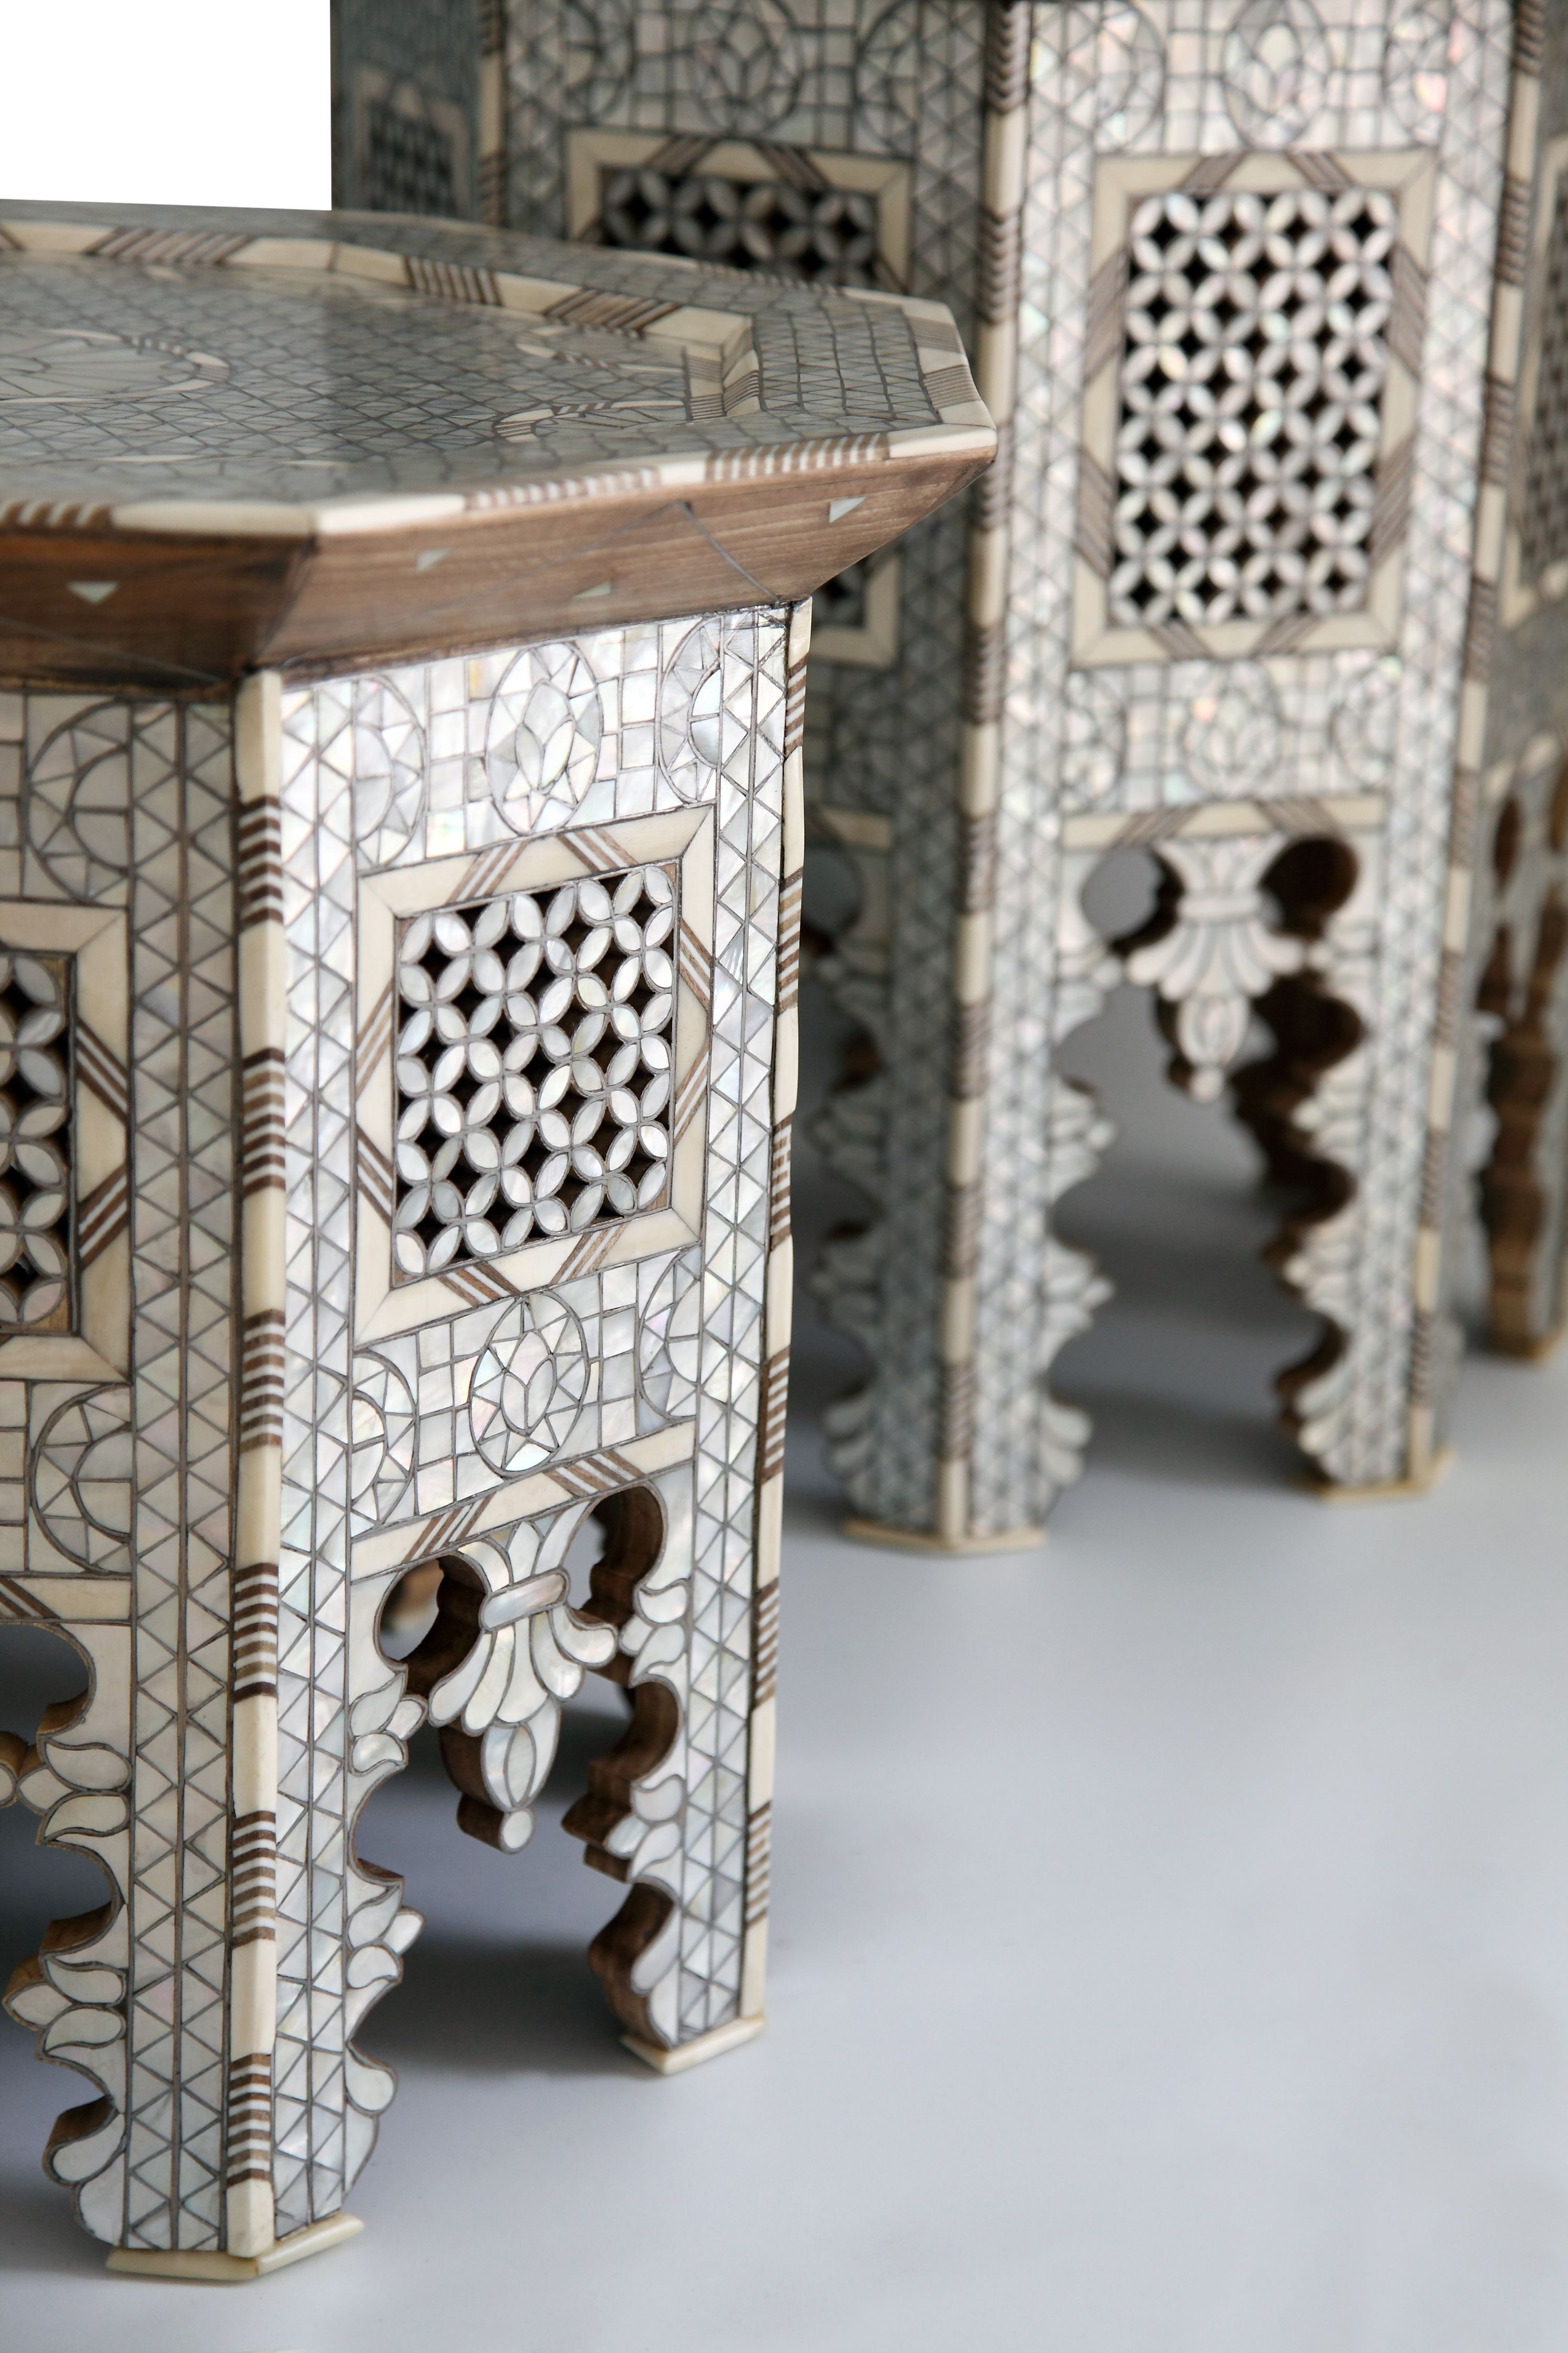 mother of pearl tables designed by nevine designs to be ordered moroccan decor